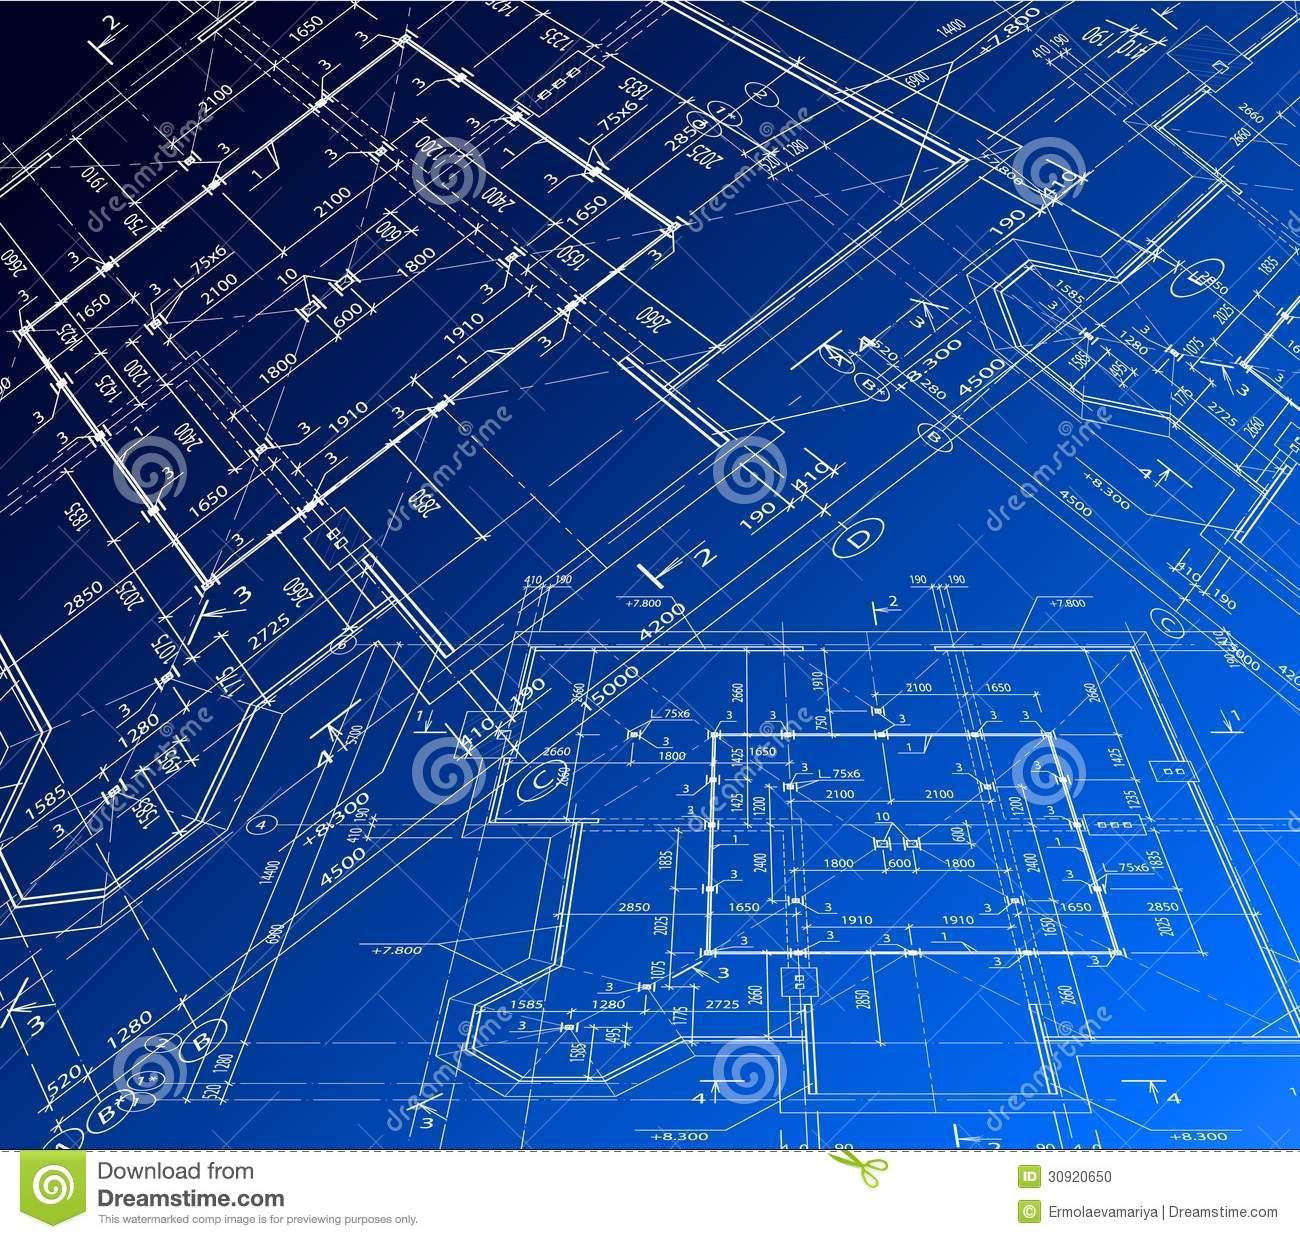 Stock Photo House Plan Vector Blueprint Background Art Illustration Image30920650 besides Luxury Villa Design Drawings further 9883438 also Stock Foto Huizen Op Het Plan Van De Architect Image2008830 as well Seaview Submarine And Aerosub. on 3d house blueprints